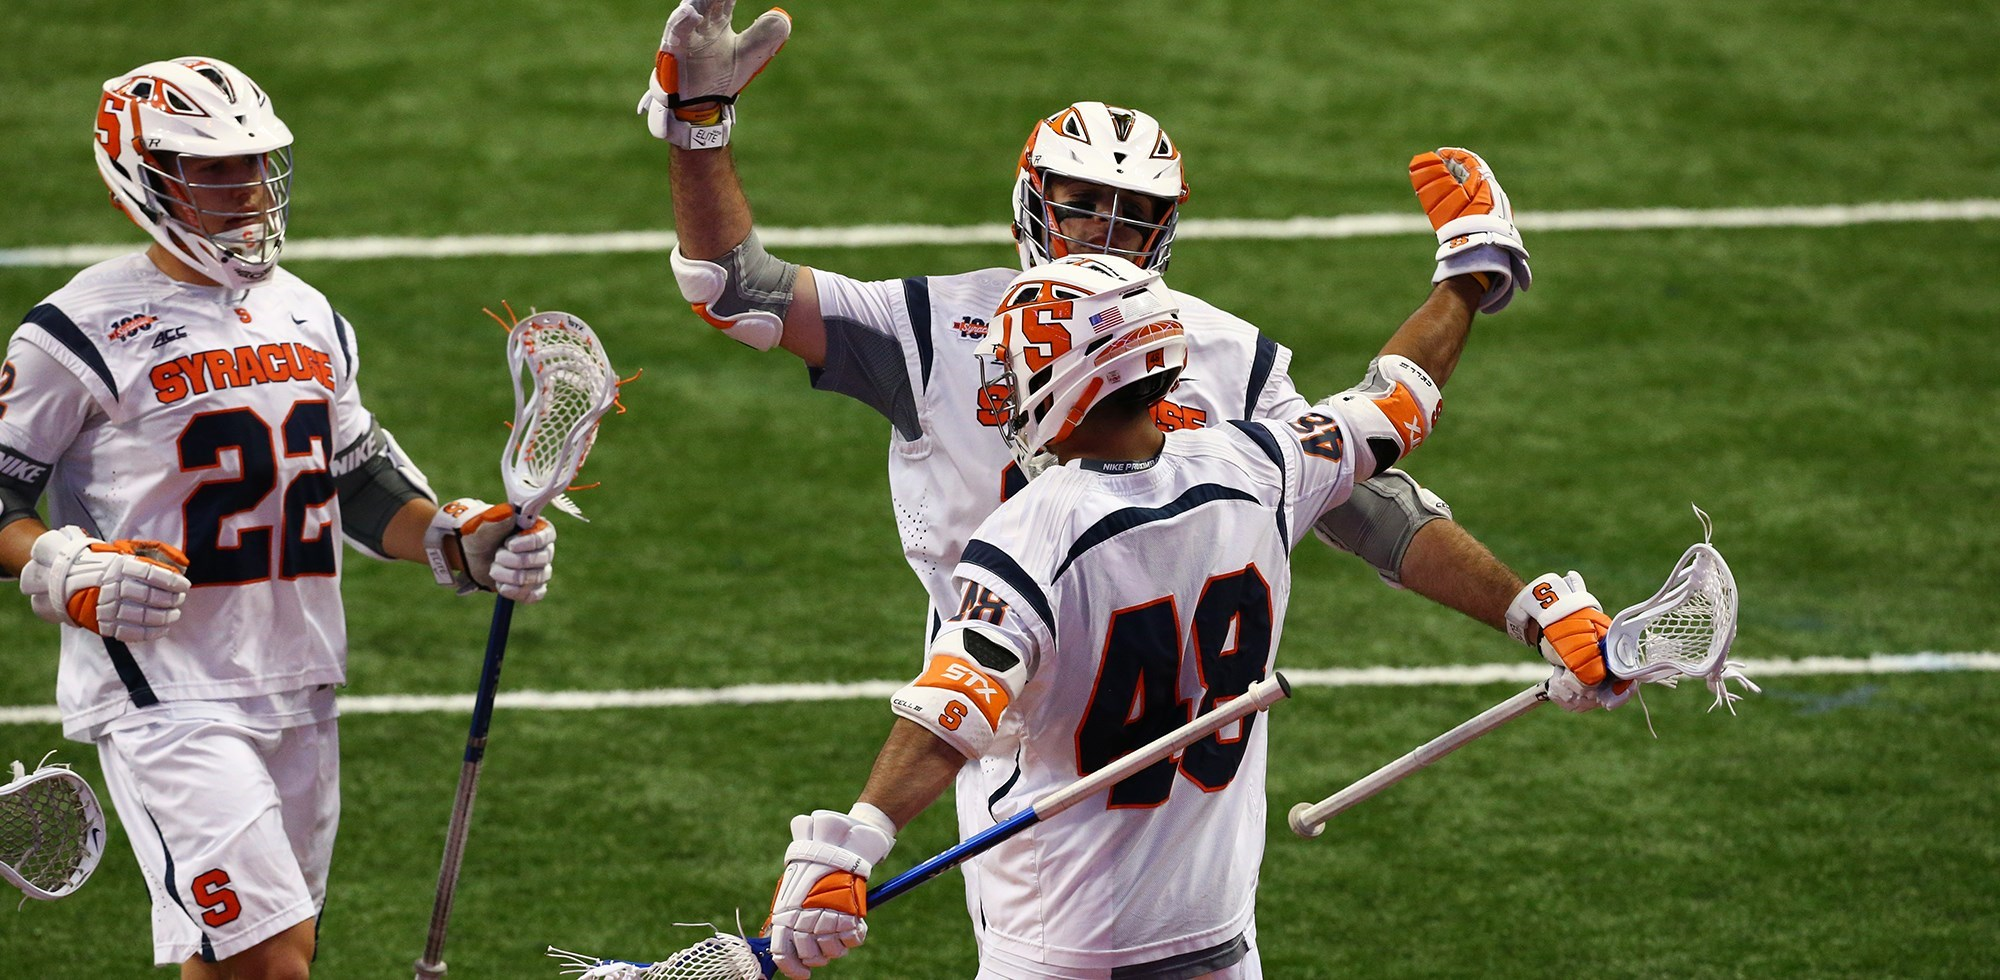 seven home dates highlight 2017 schedule - syracuse university